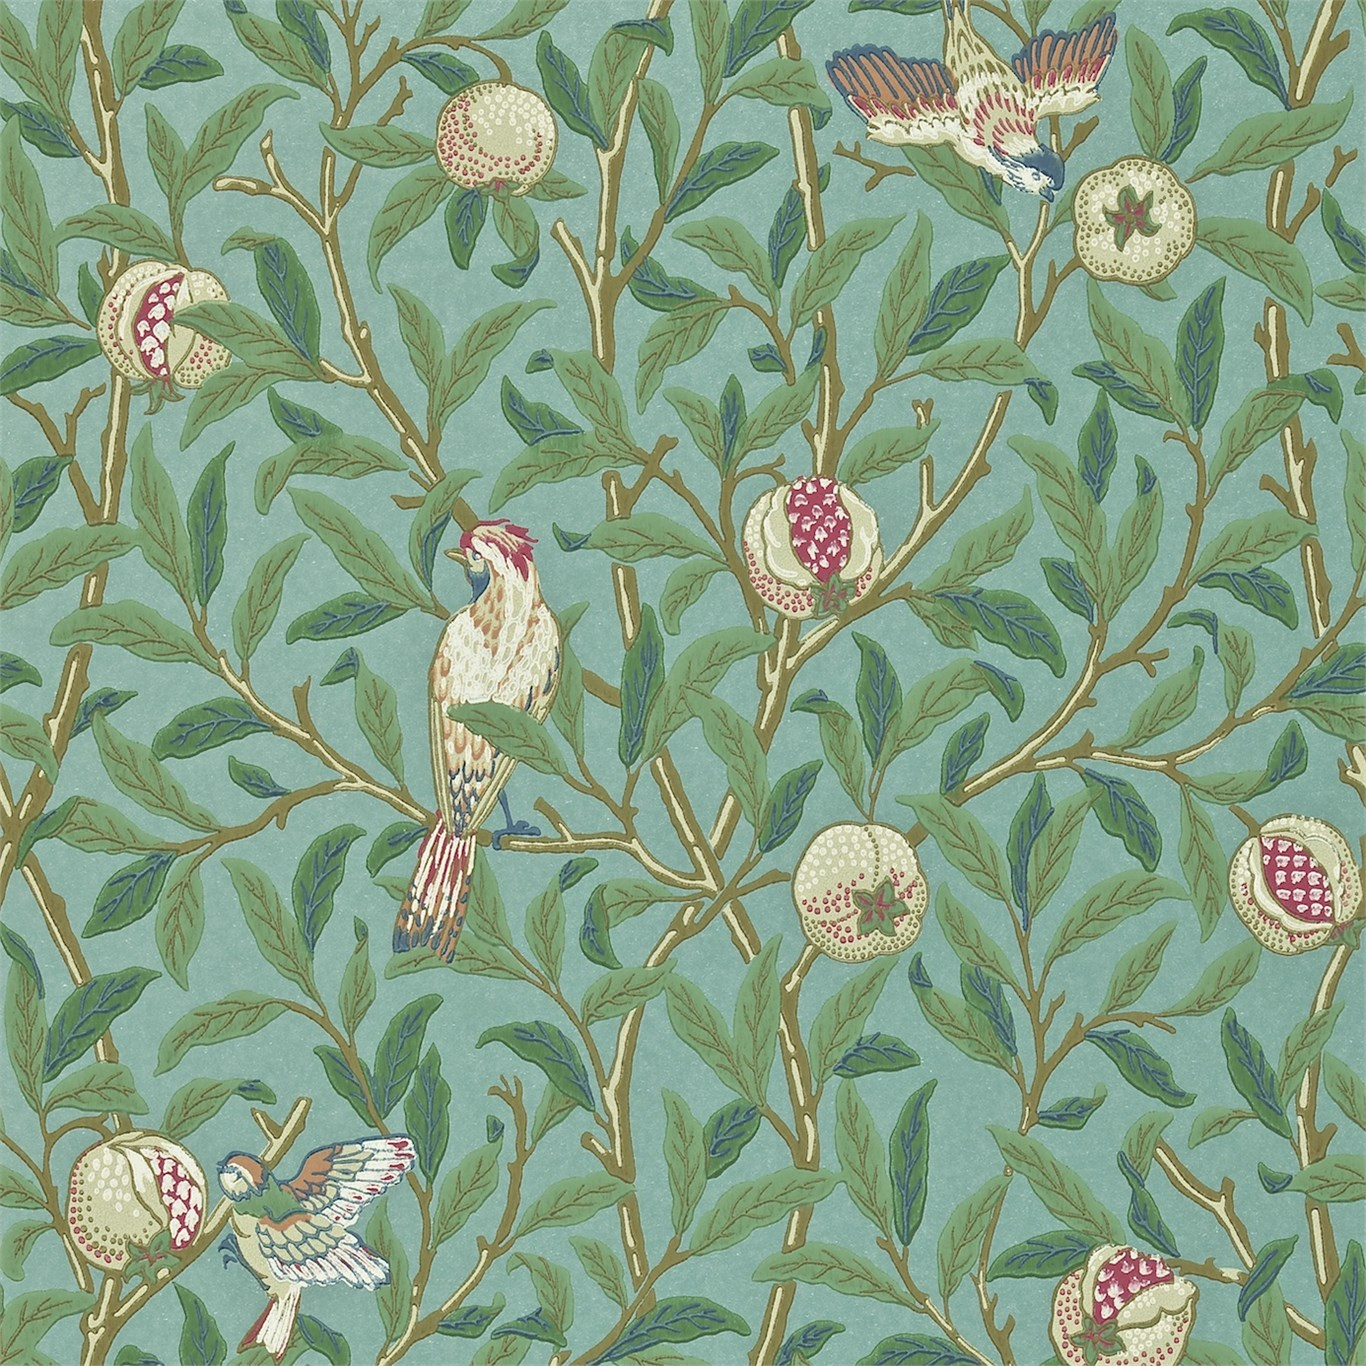 Wallpaper With Birds morris & co - bird & pomegranate wallpaper